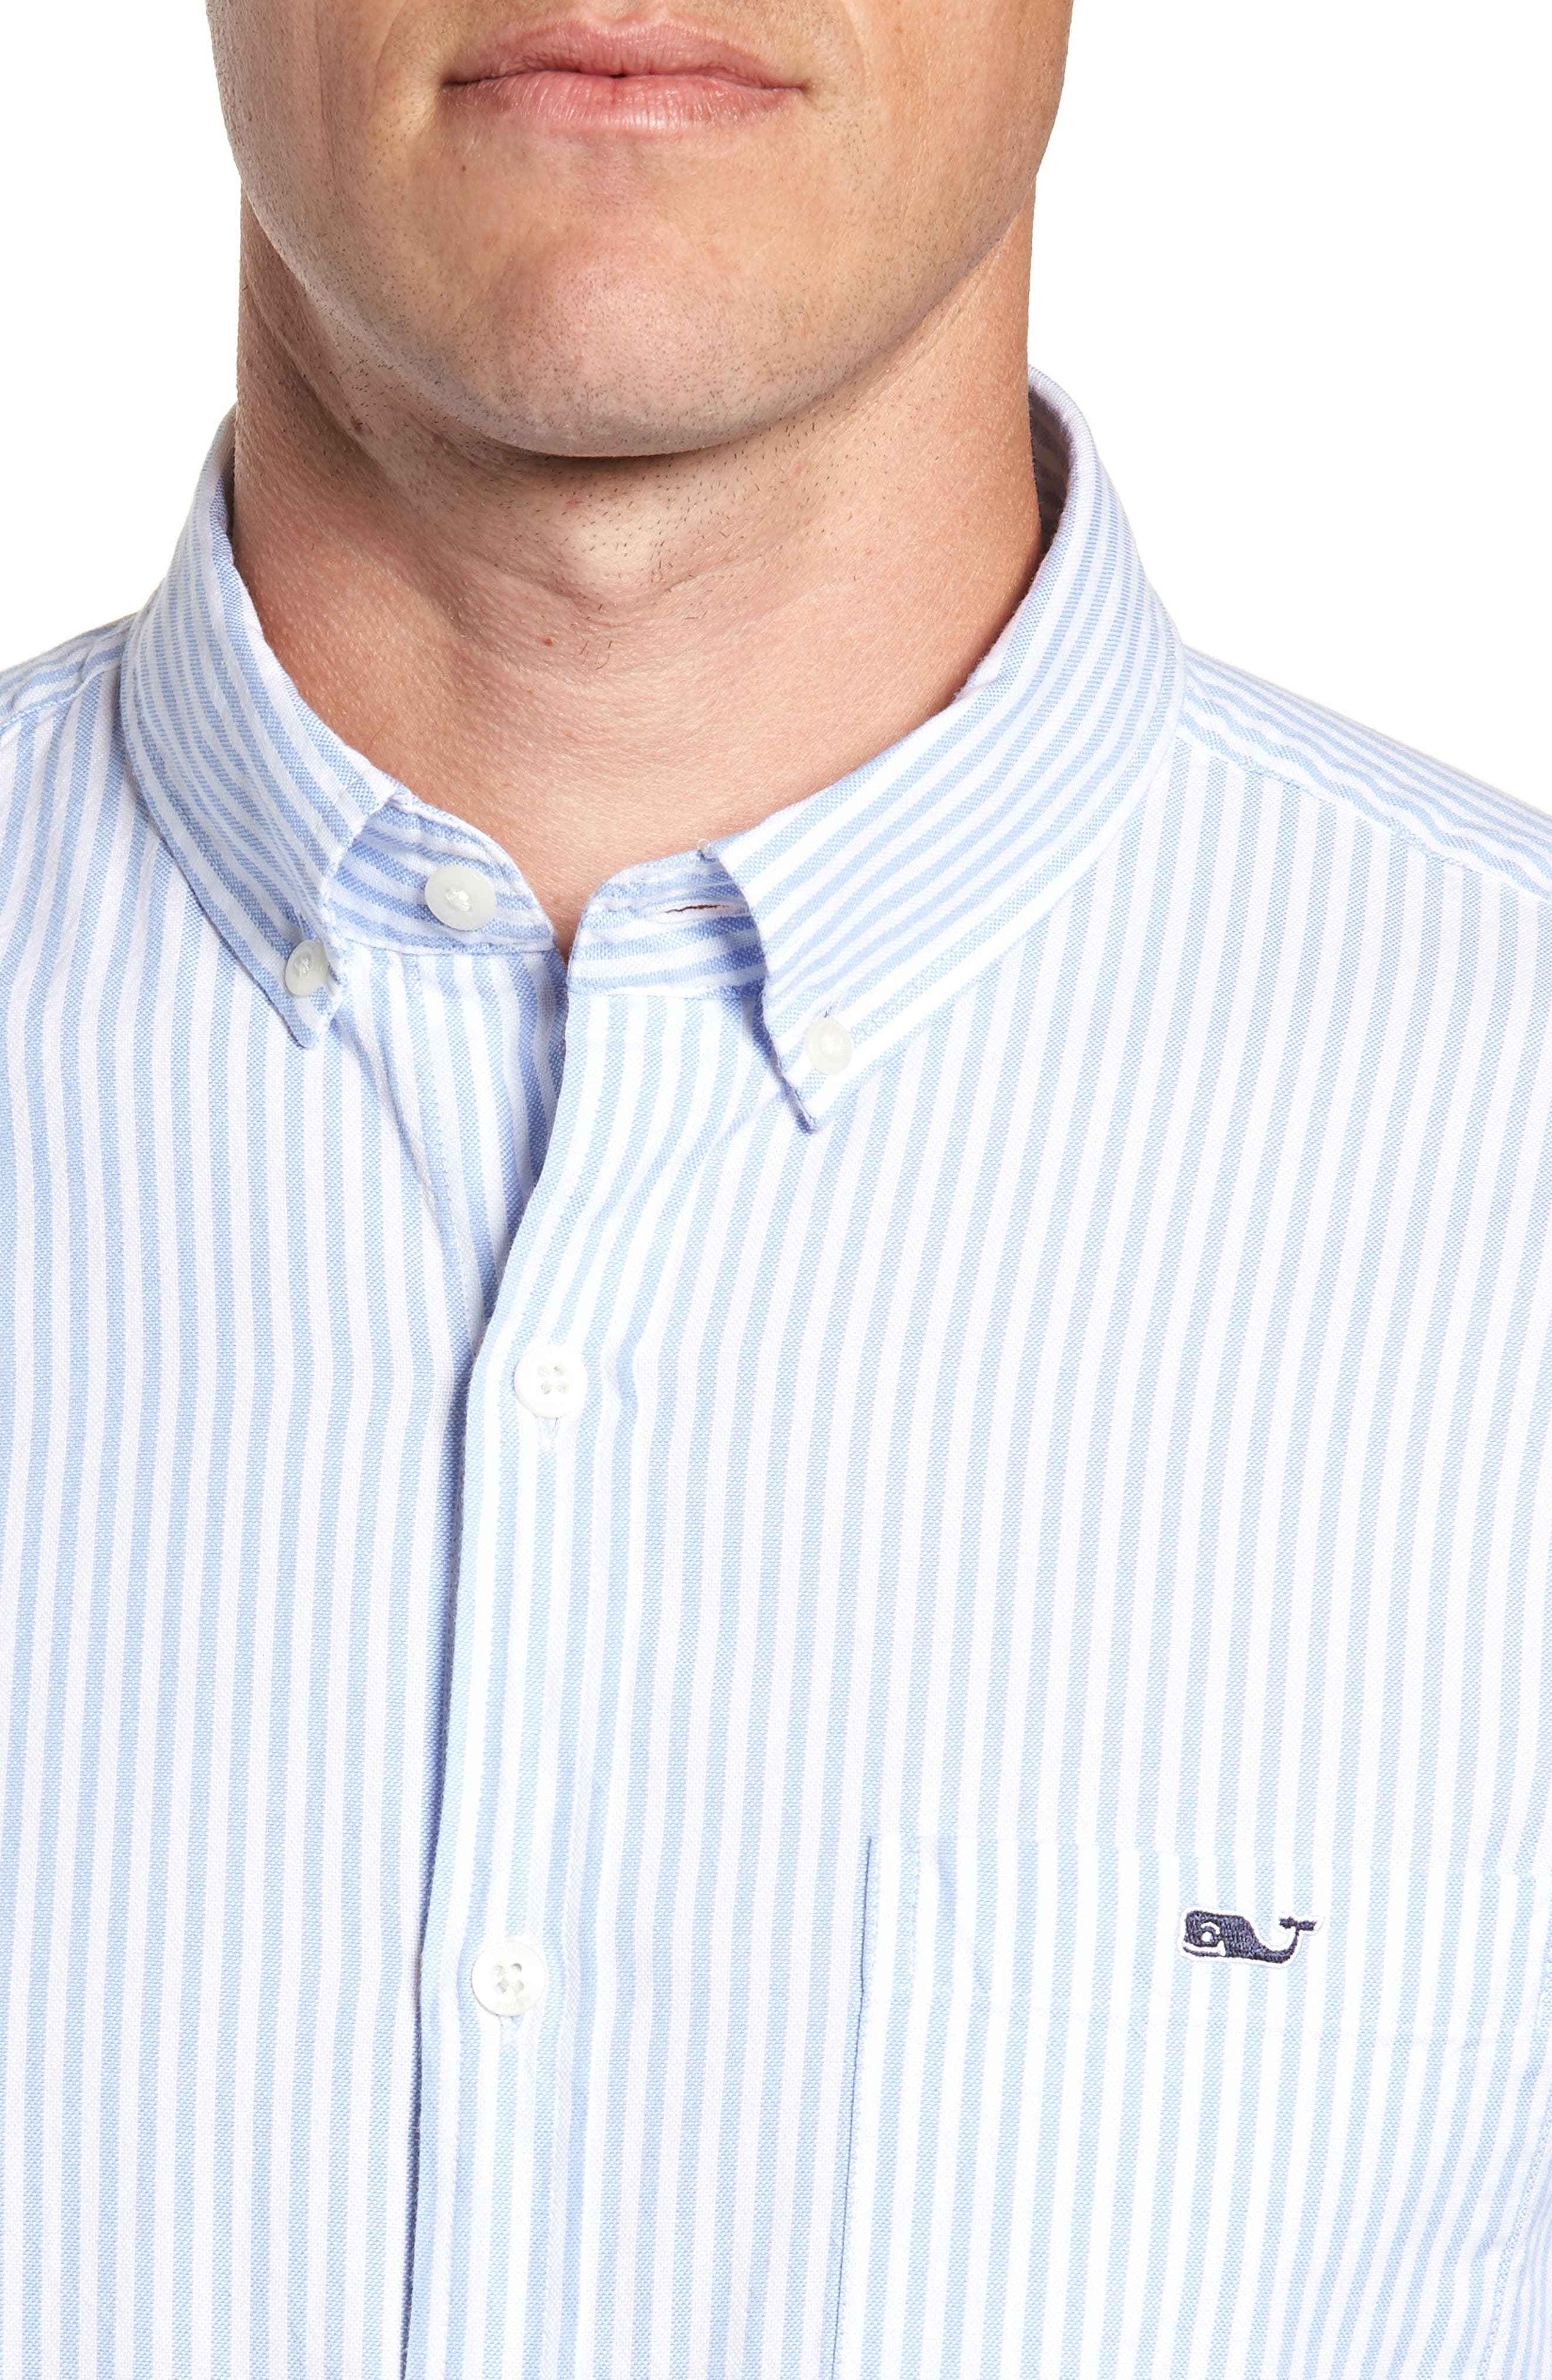 Tiloo Cay Slim Stretch Tucker Sport Shirt,                             Alternate thumbnail 2, color,                             484